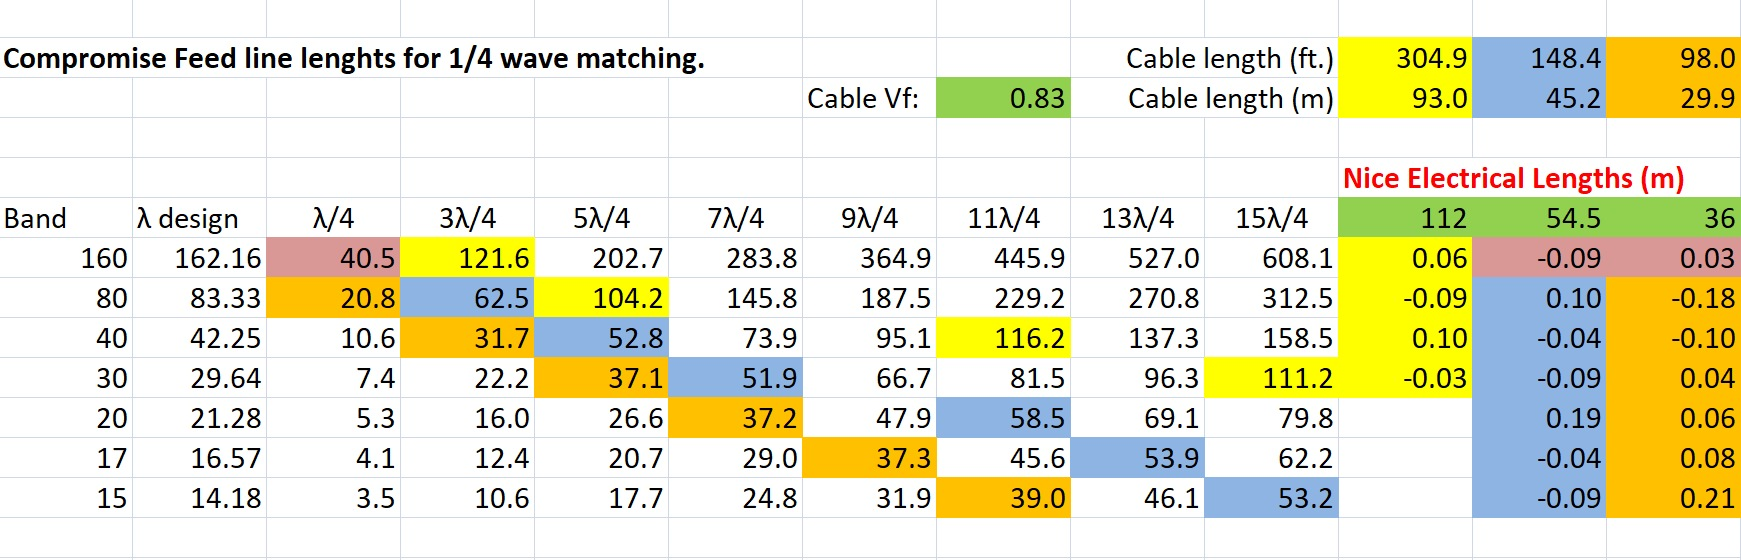 Optimizing Multi Band Wire Antennas Squash Practice And The Antenna Transmitter Two Points Are In One Line You Have To Be More Accurate Exact Length For Shorter Wavelength Bands Get Comparable Errors Across All Hence Slight Changes